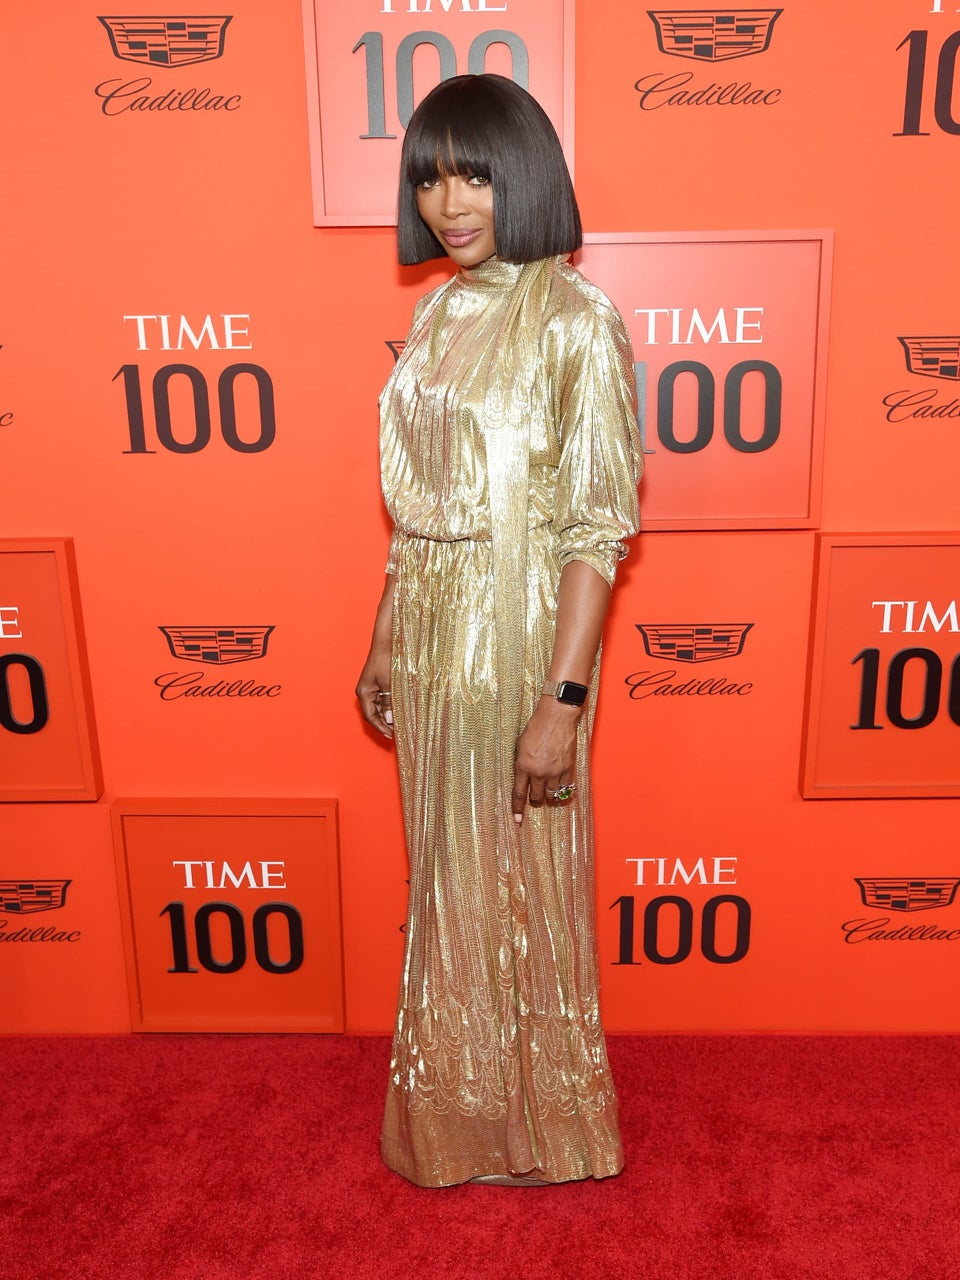 Naomi Campbell, Janet Mock, Tarana Burke and More Celebrities Give Stunning Red Carpet Beauty At The Time 100 Gala